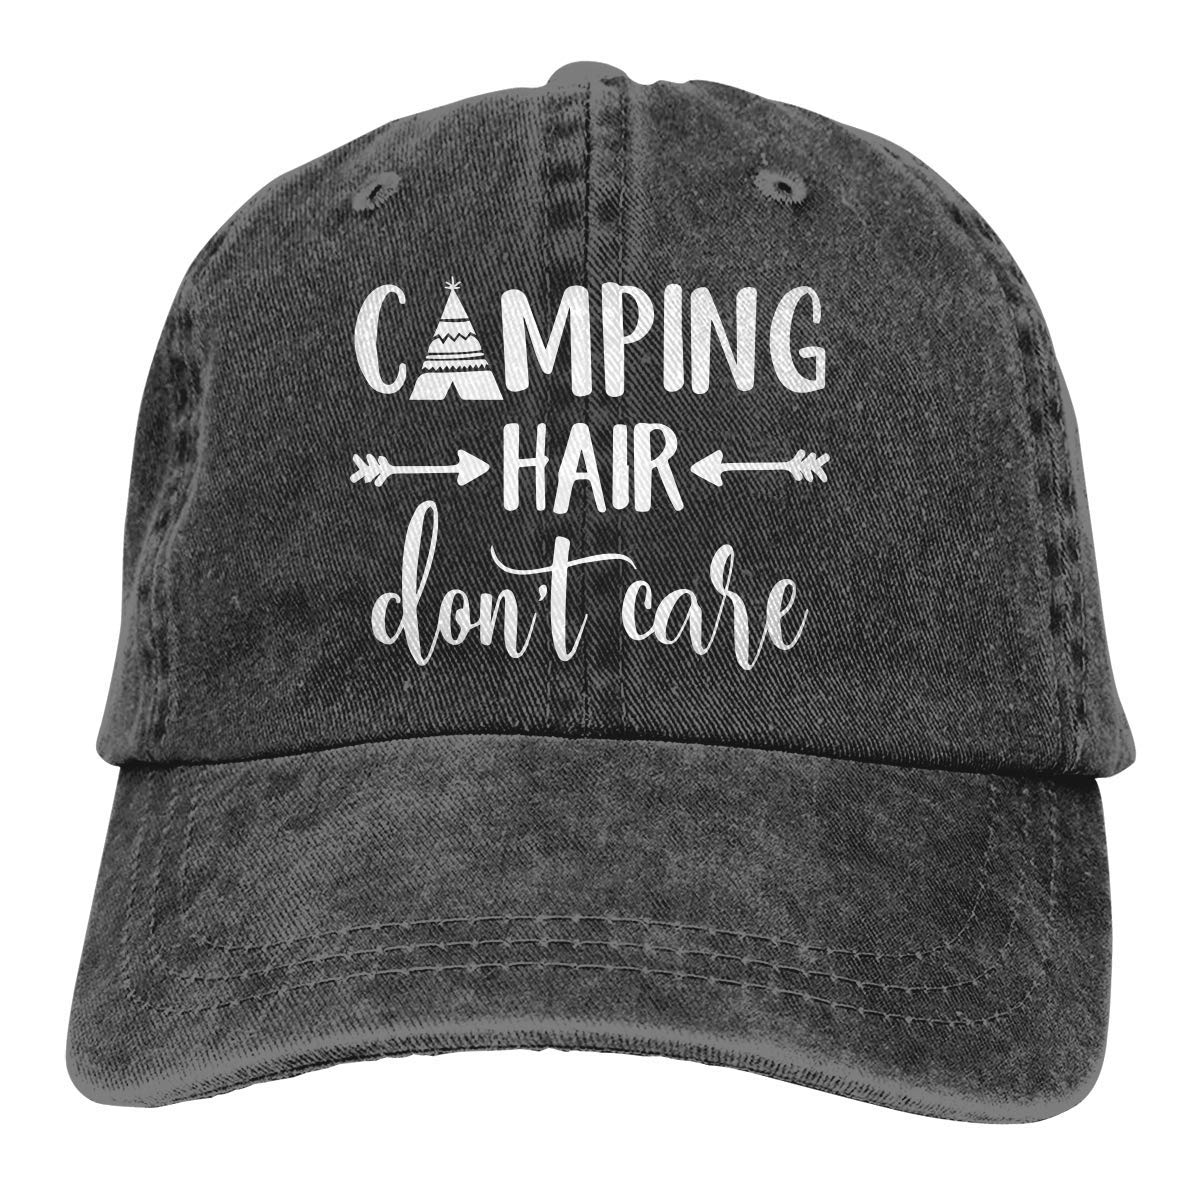 Unisex Camping Hair Don t Care-1 Vintage Jeans Baseball Cap Classic Cotton  Dad Hat Adjustable Plain Cap at Amazon Men s Clothing store  1332f43c56f